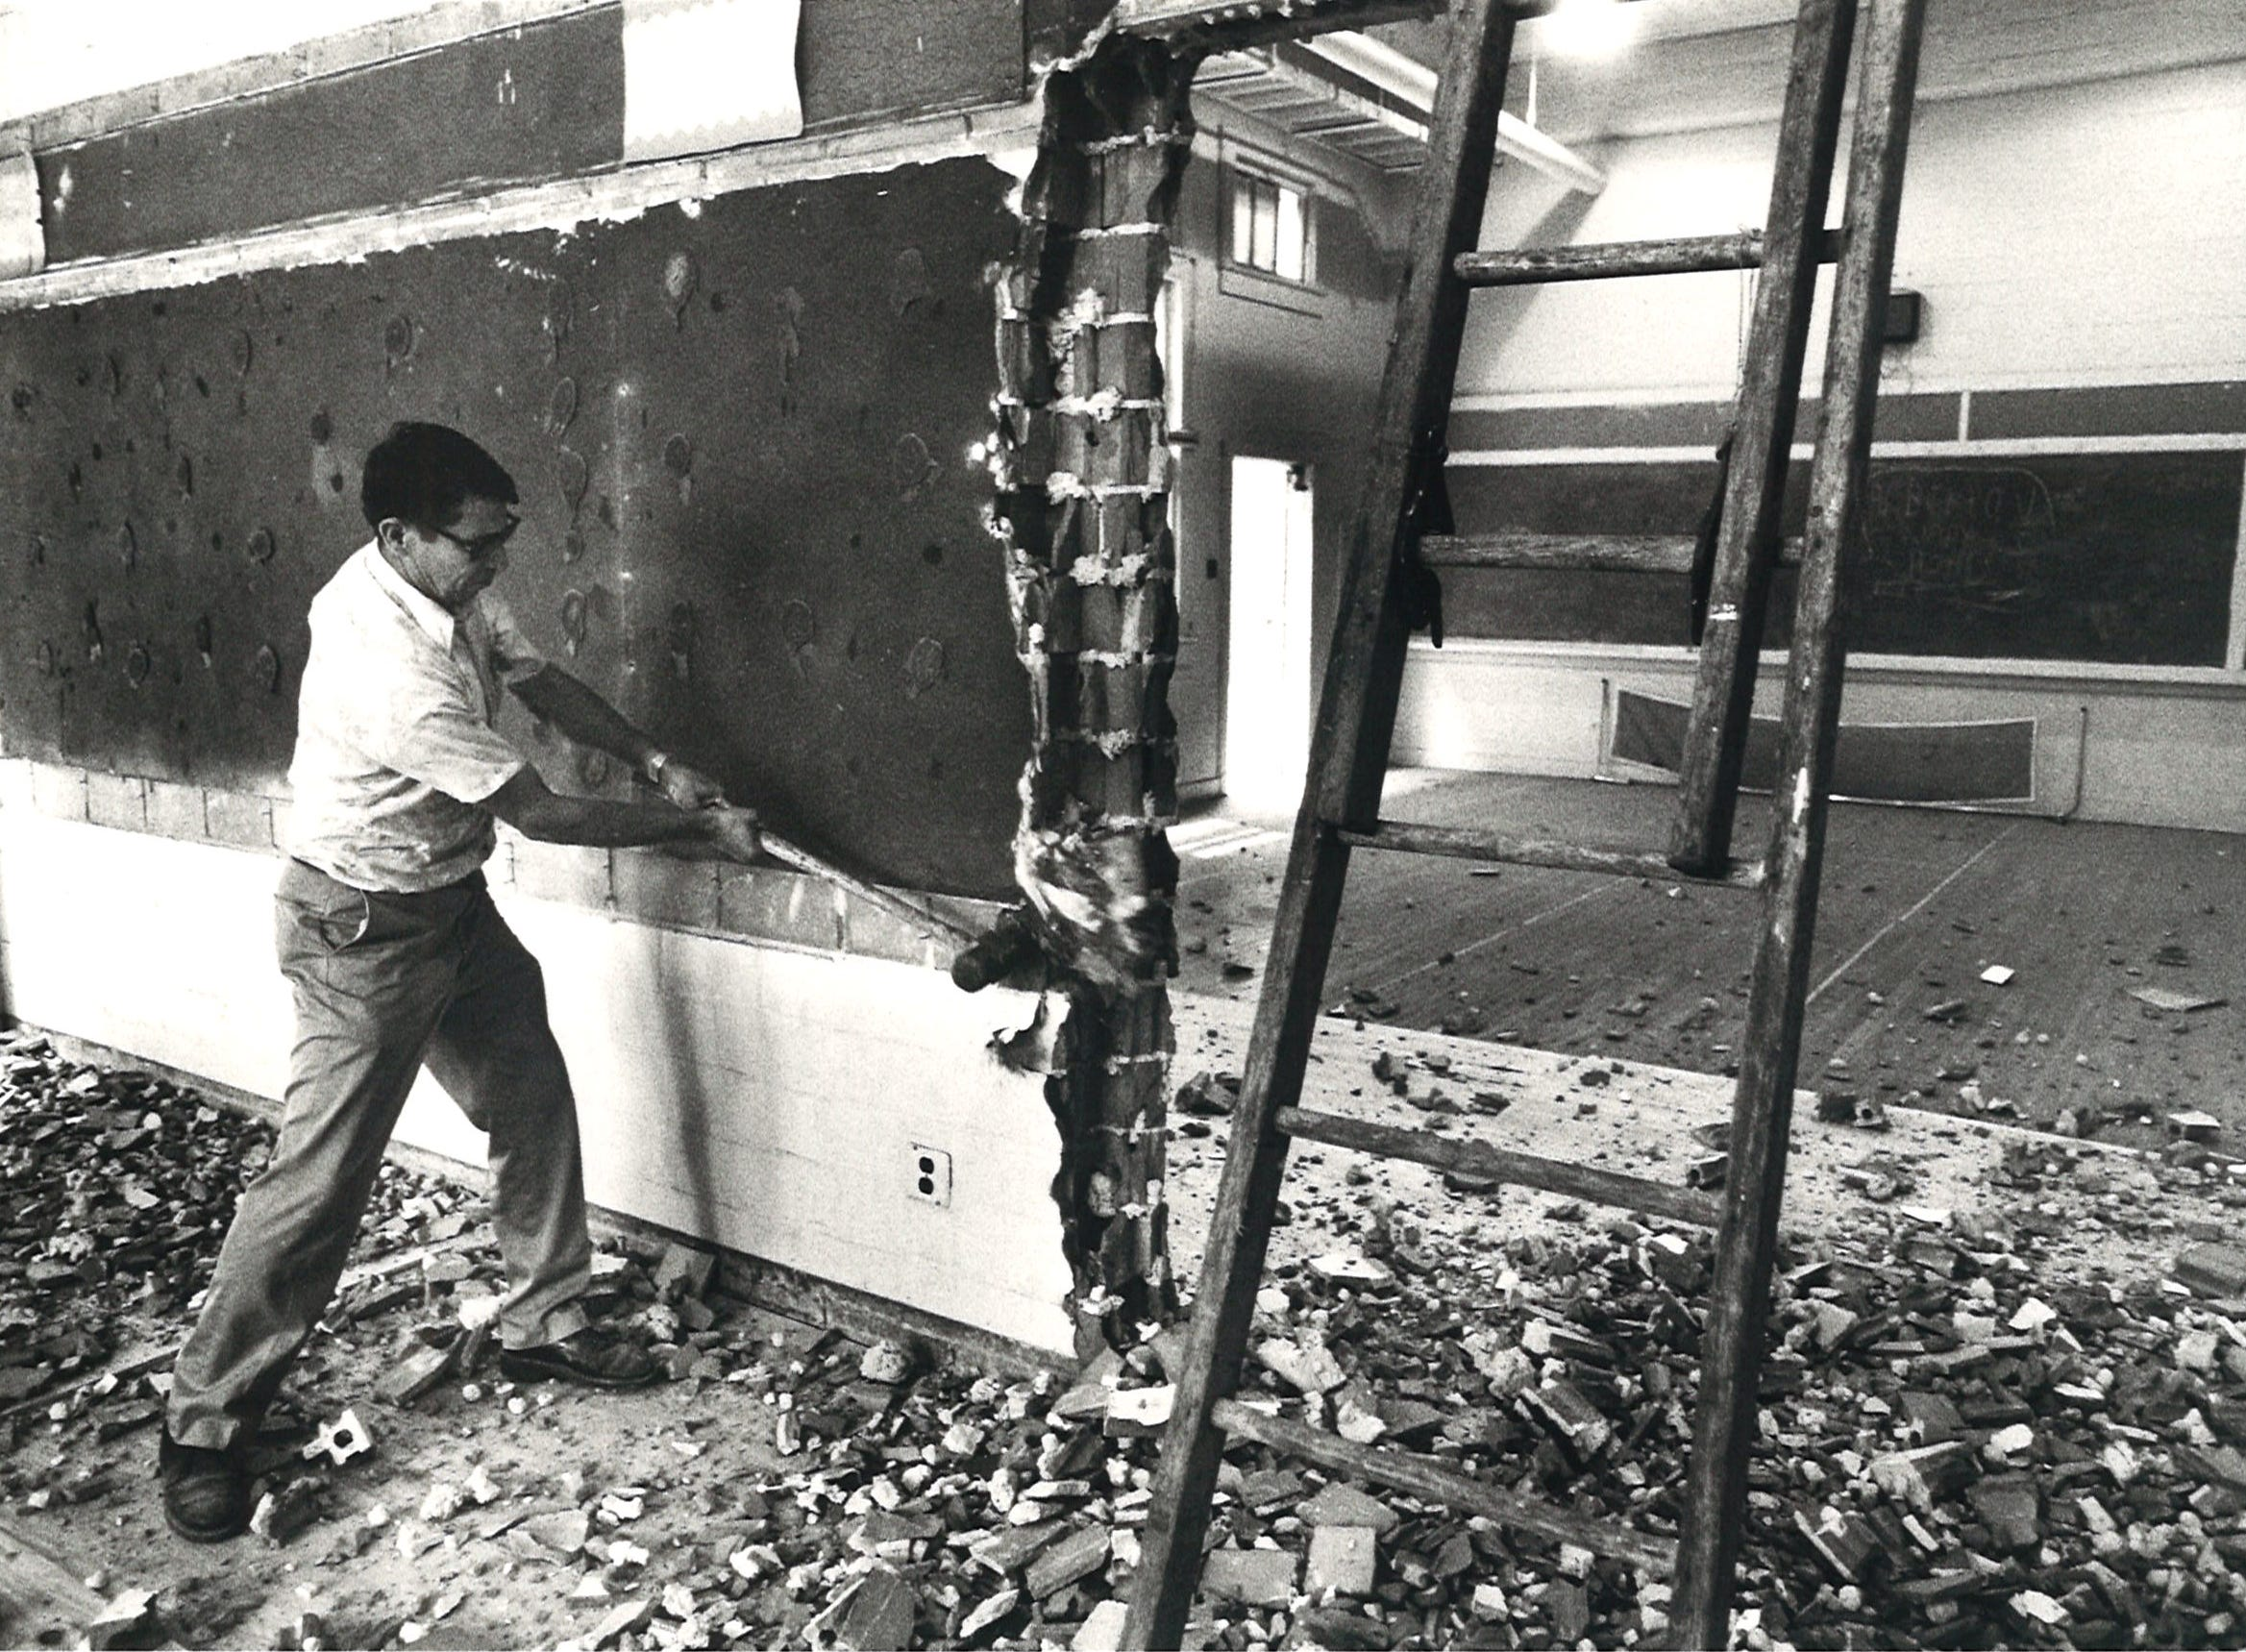 Construction worker Isidro Perez knocks down a wall a Buc Stadium during renovations in August 1982.